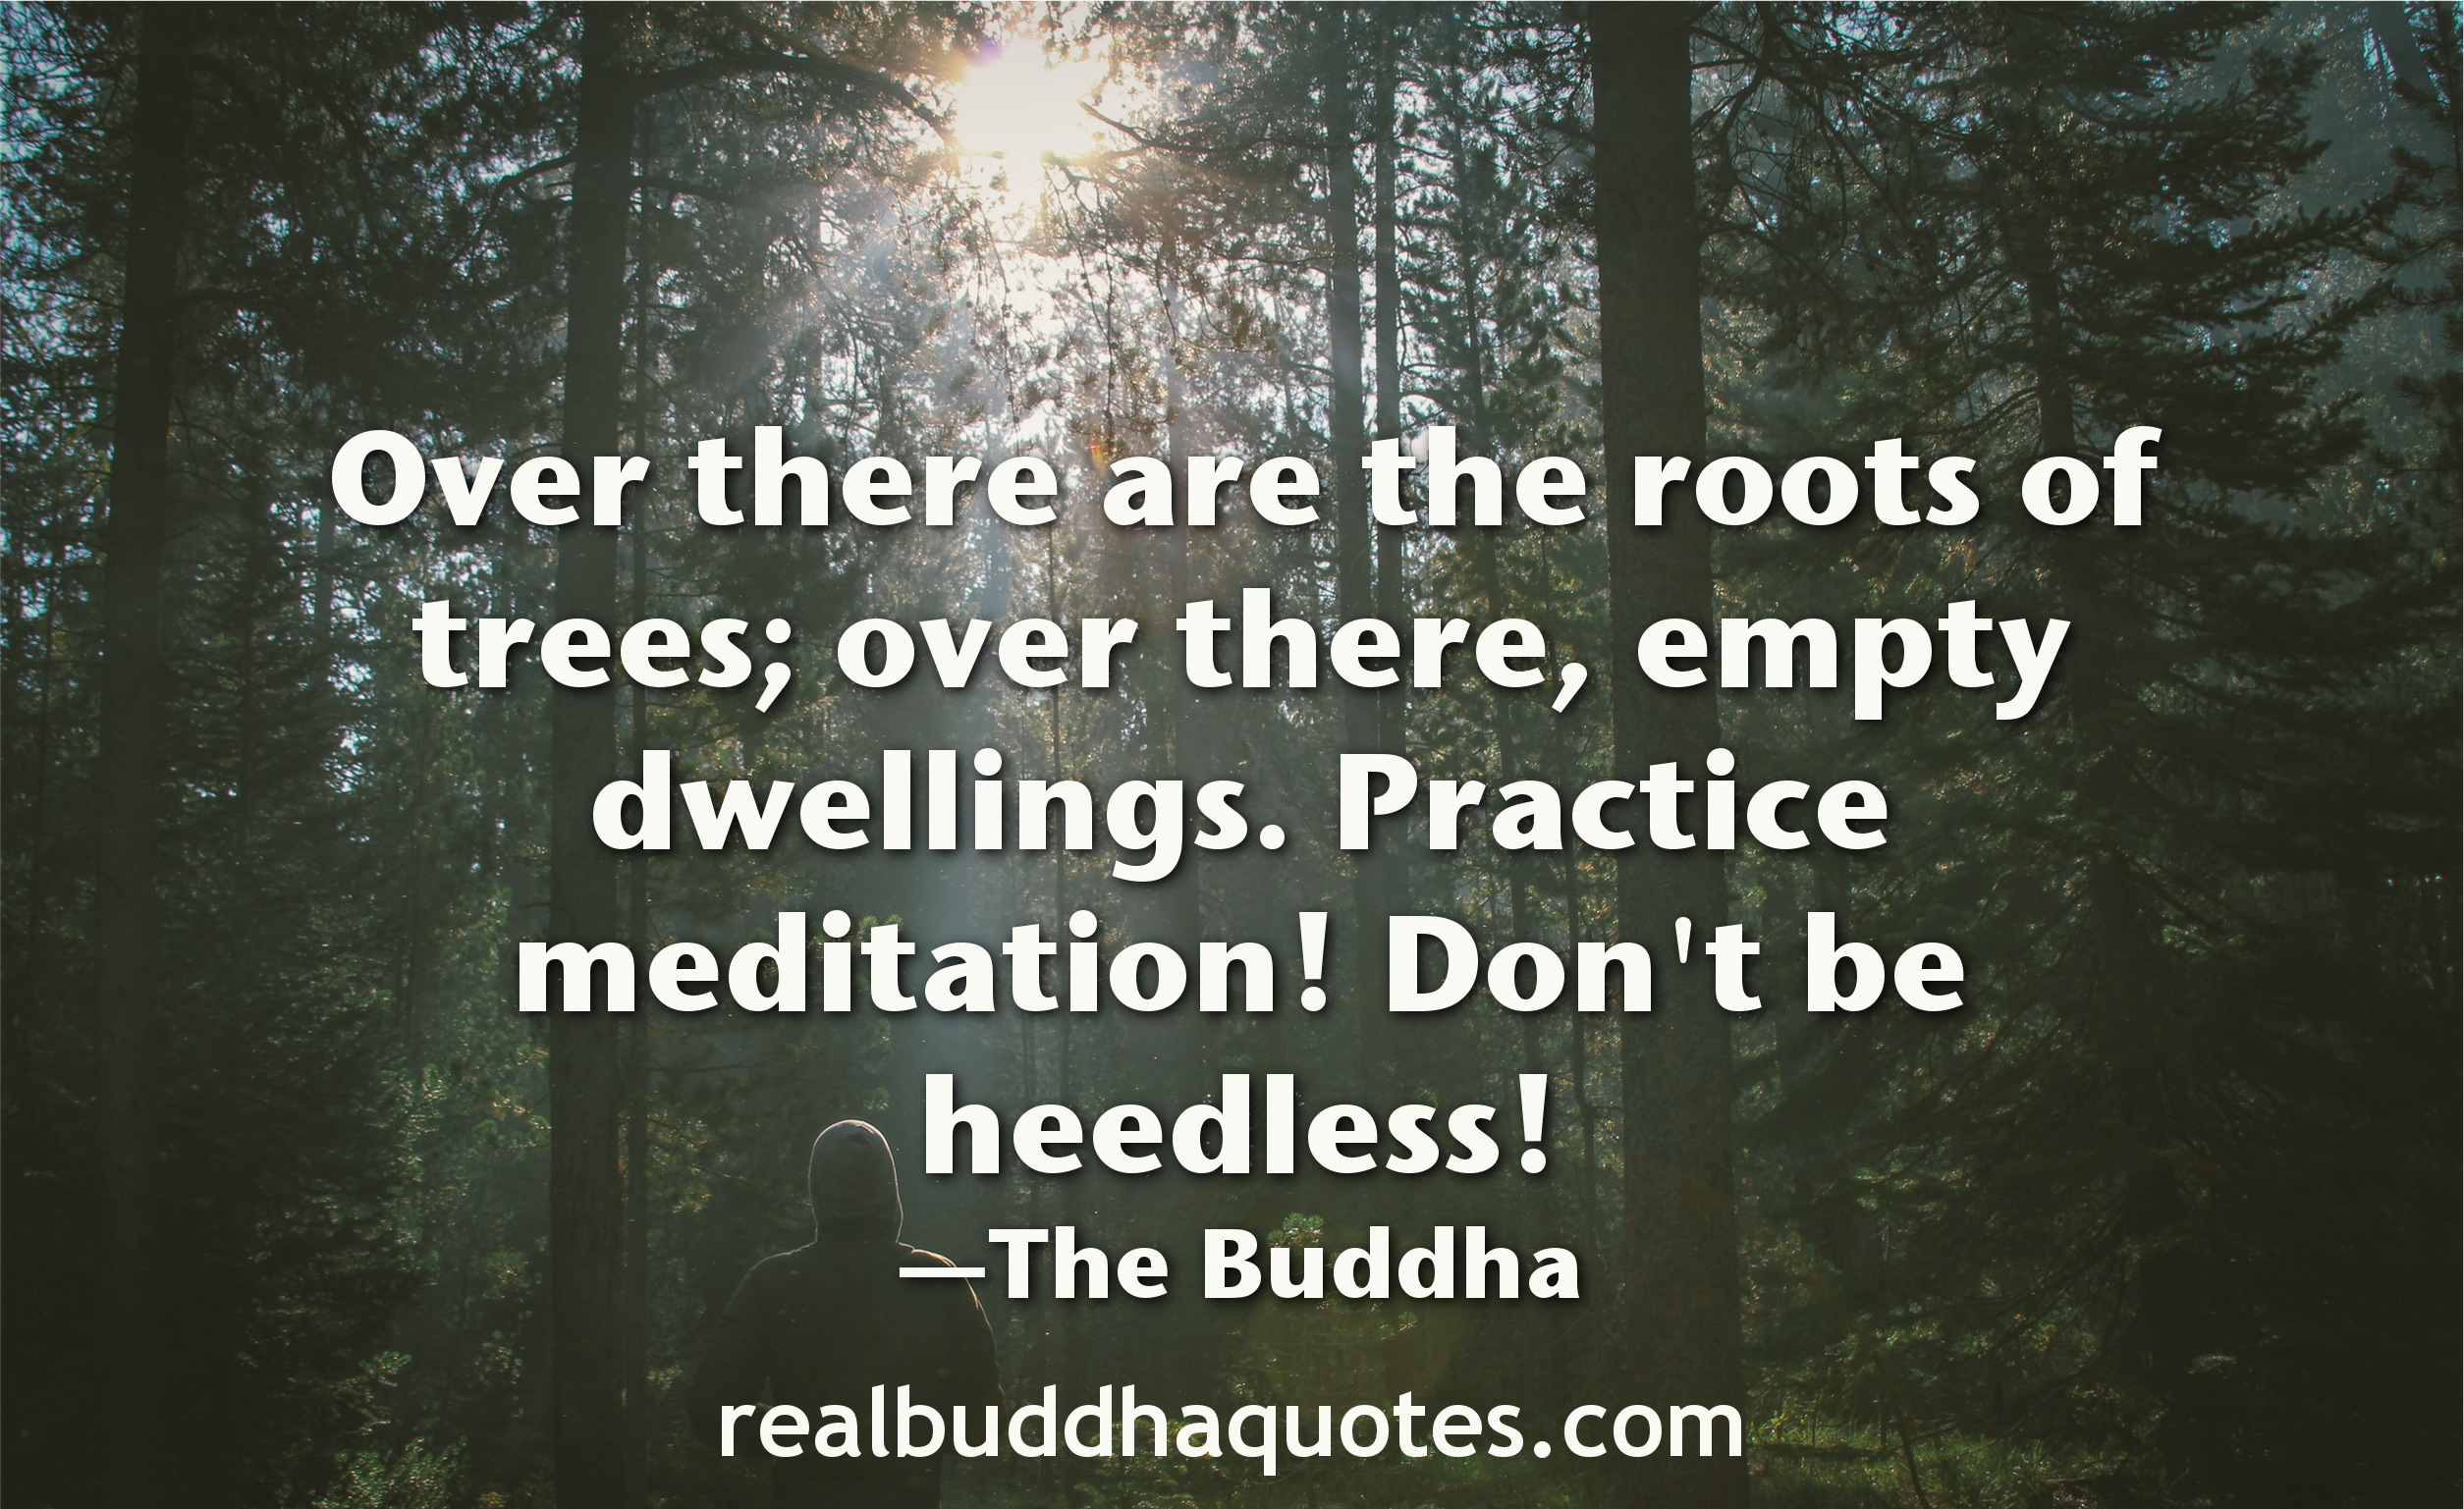 Real Buddha Quotes Over There Are The Roots Of Trees Over There Empty Dwellings